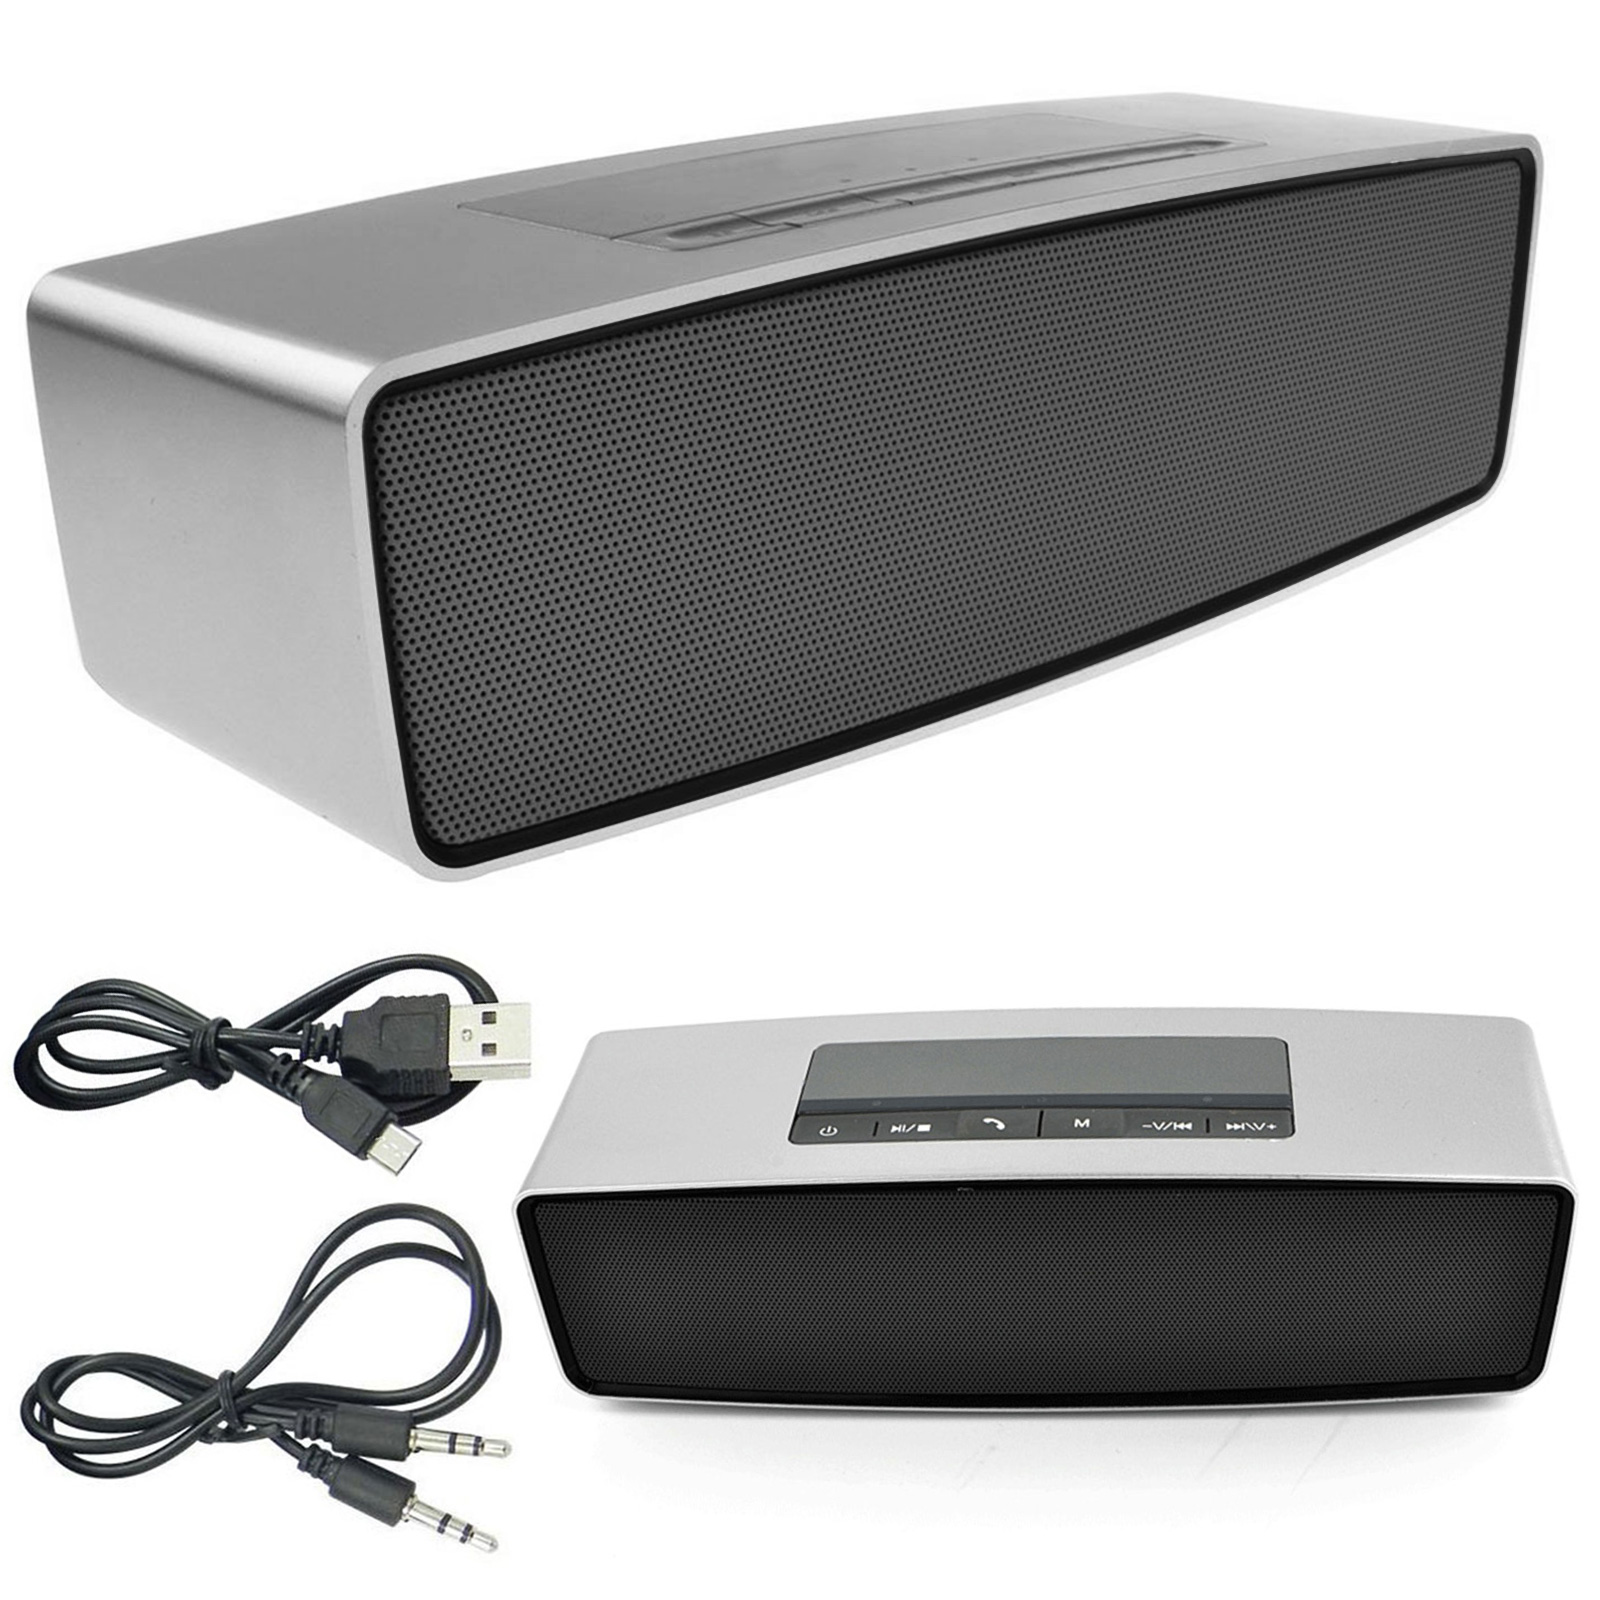 Latest Wireless Portable Rechargable Bluetooth Speaker For iPhone iPod Samsung